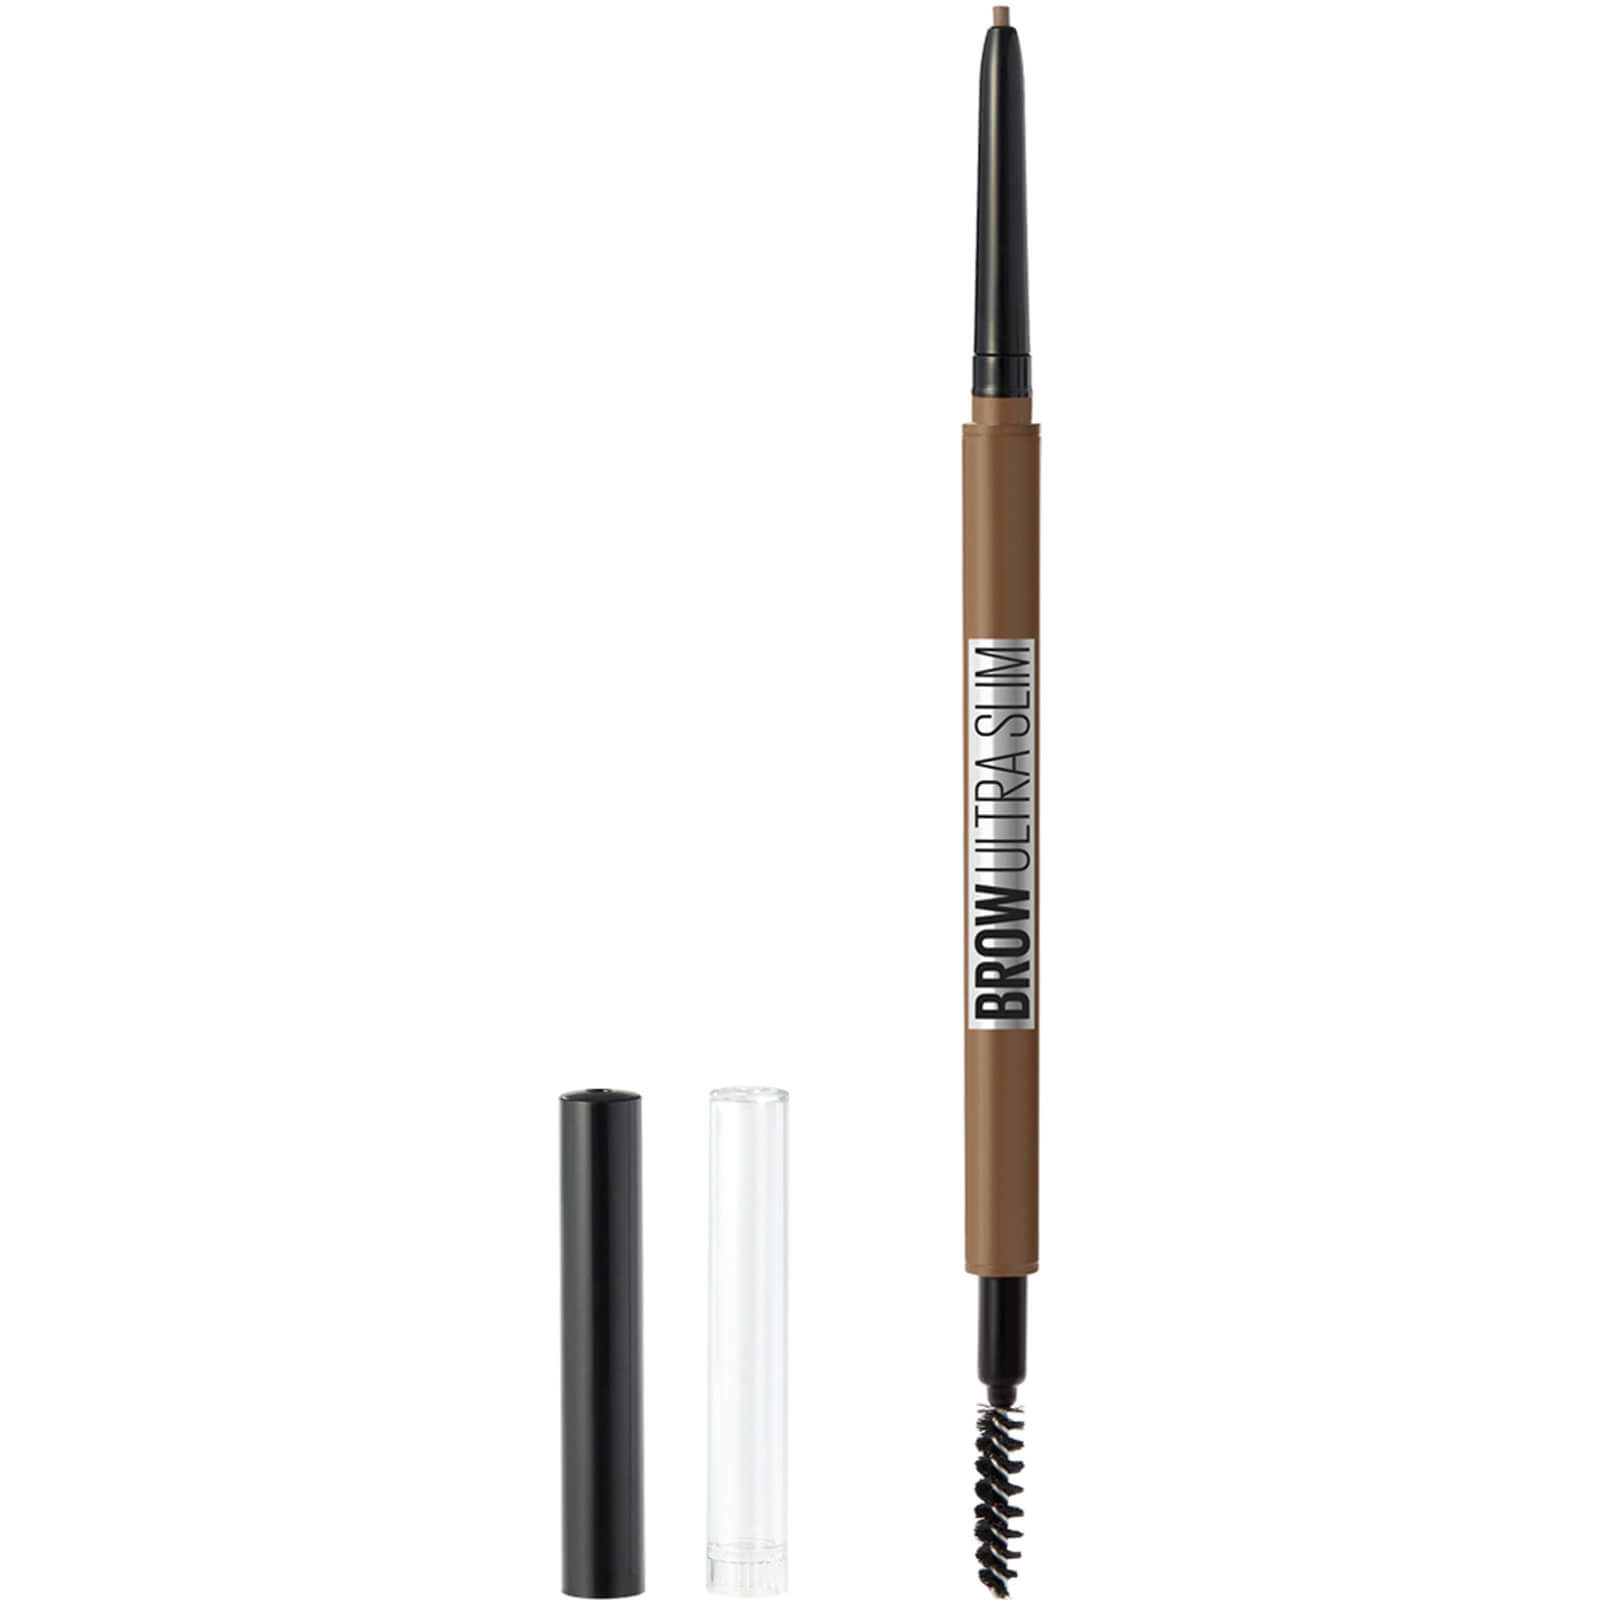 Maybelline Brow Ultra Slim Eyebrow Pencil 1Ml (Various Shades) - 02 Soft Brown